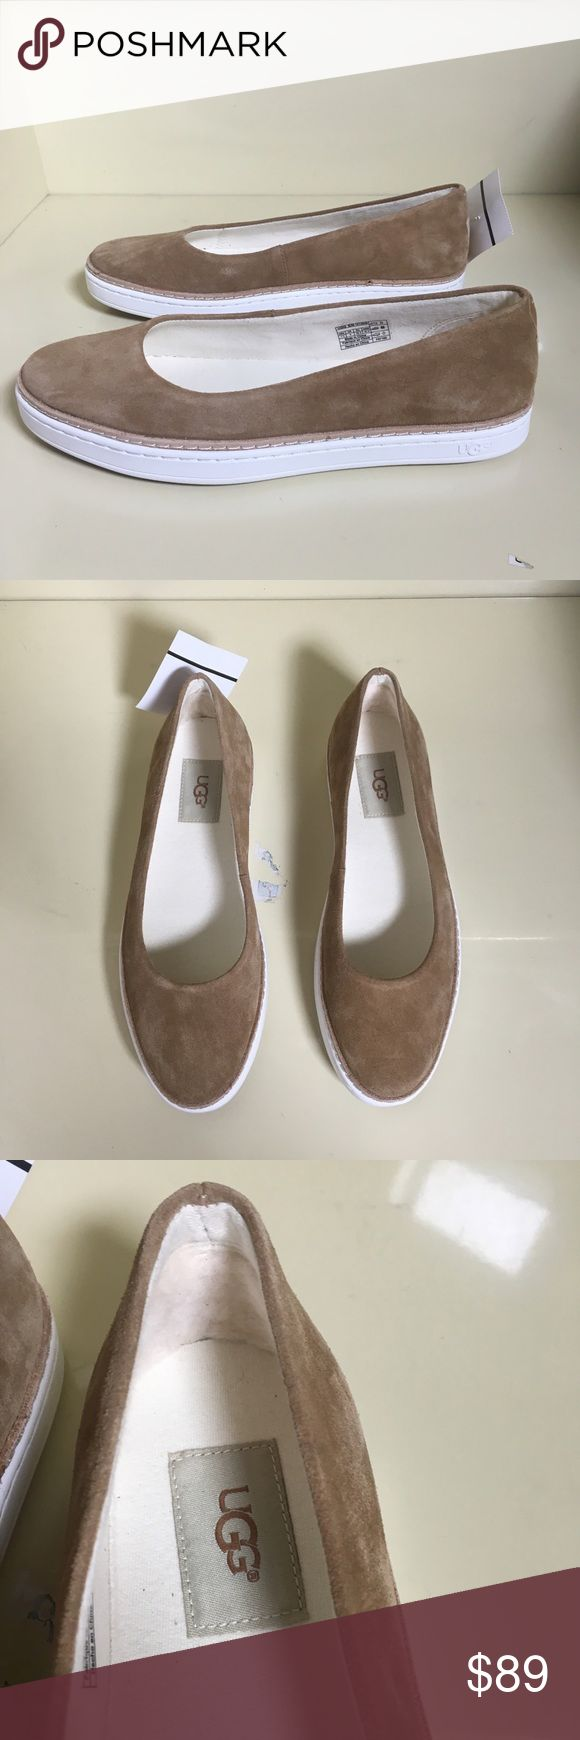 Ugg slipon nude sneaker ballet flat Kammi Chestnut Brand new with tags no box. Flats are in excellent condition with no flaws. Following description is pulled from Nordstrom: A streamlined suede skimmer completes your casual style with understated sophistication and is lined at the heel with a tuft of plush UGGpure™ wool for a bit of extra comfort. Slip-on style Leather upper/textile lining/rubber sole Imported Women's Shoes UGG Shoes Flats & Loafers